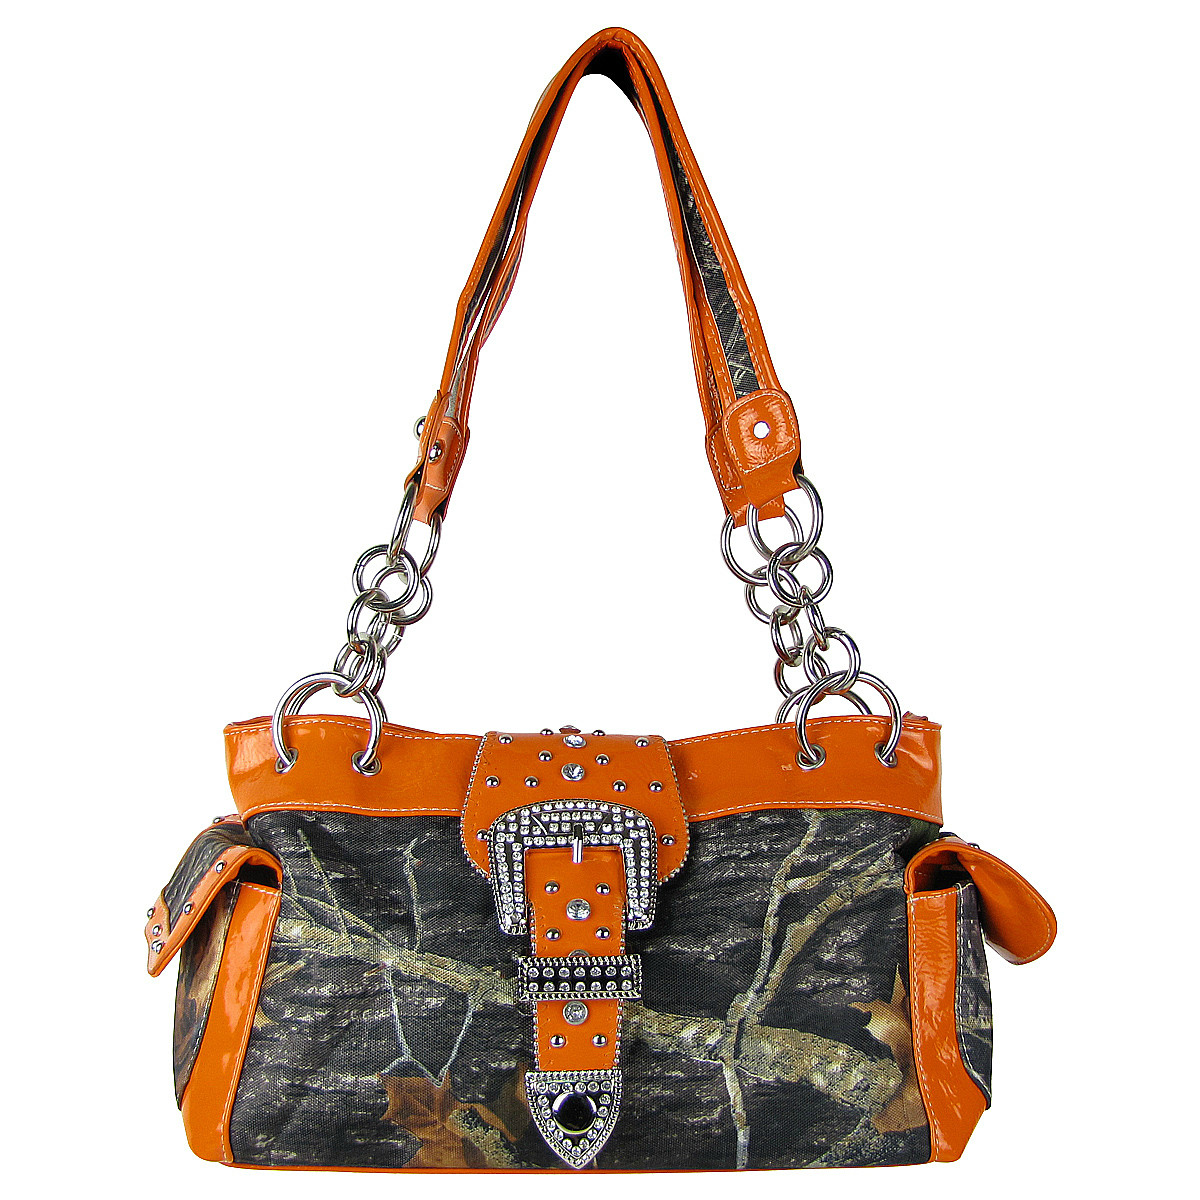 ORANGE MOSSY CAMO RHINESTONE BUCKLE SHOULDER HANDBAG HB1-C154ORG